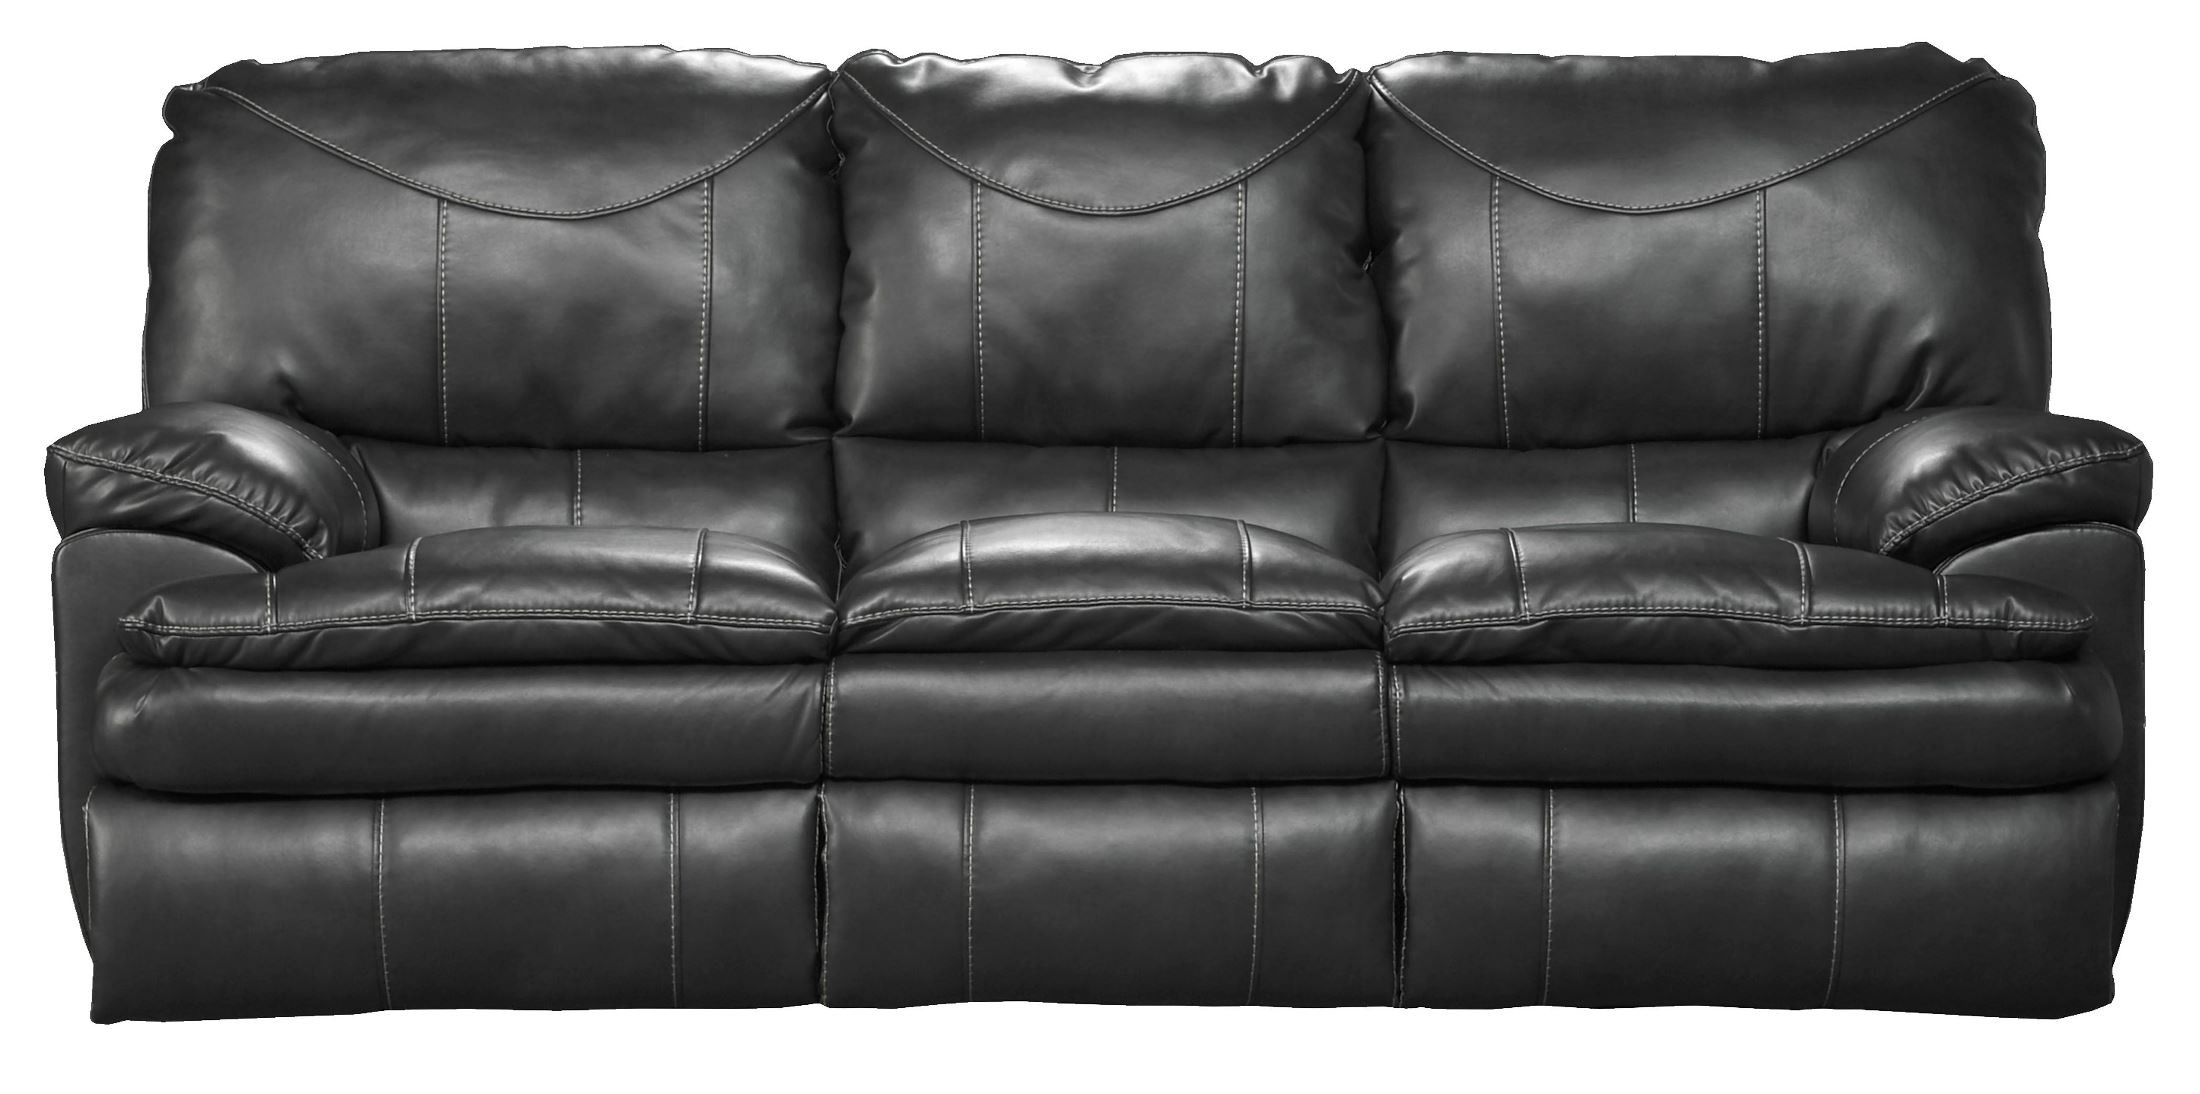 power reclining sofa made in usa recliner bed perez steel from catnapper